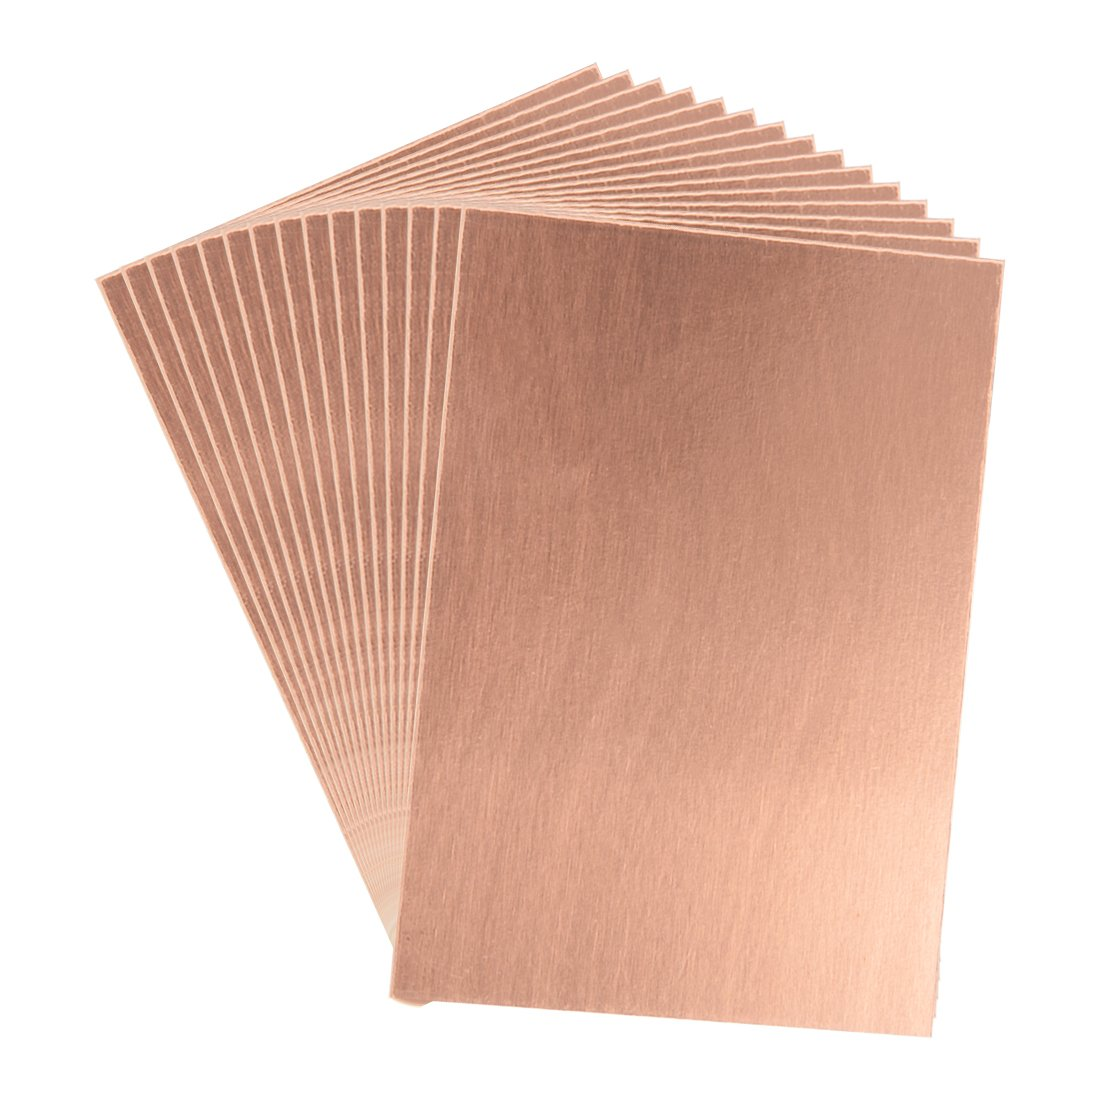 uxcell 7X10cm Single Sided Copper Clad Laminate PCB Circuit Board Brown 10pcs a18042700ux0132